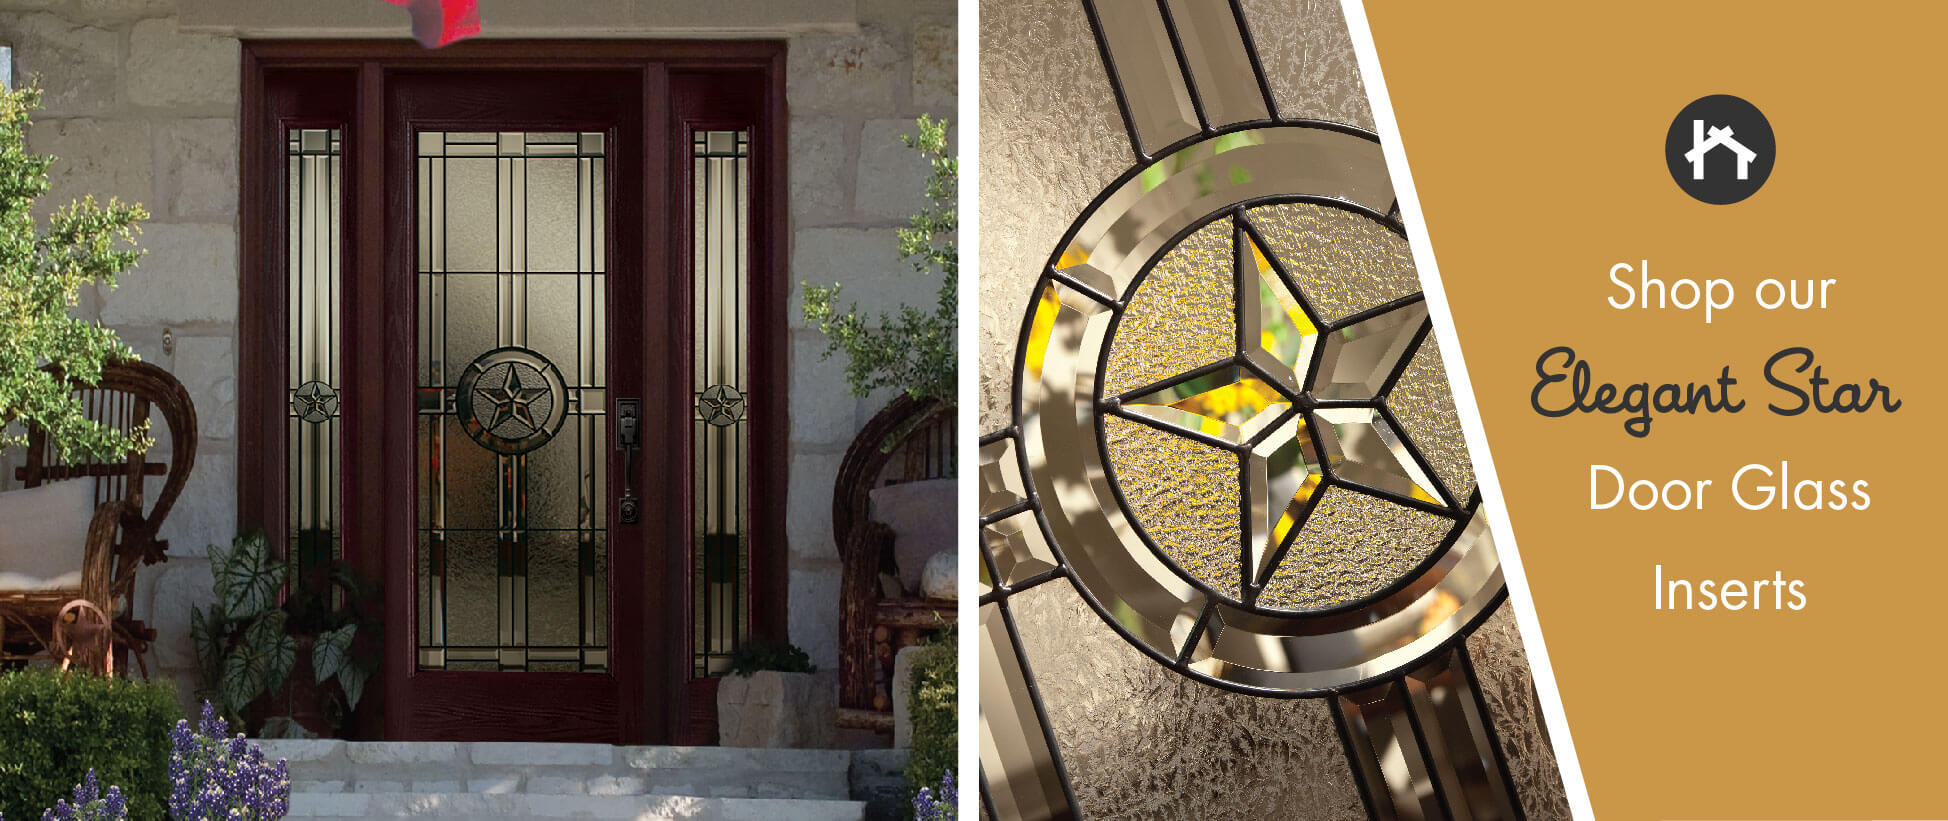 Texas Star Decorative Door Glass Inserts | ODL Elegant Star | Zabitat